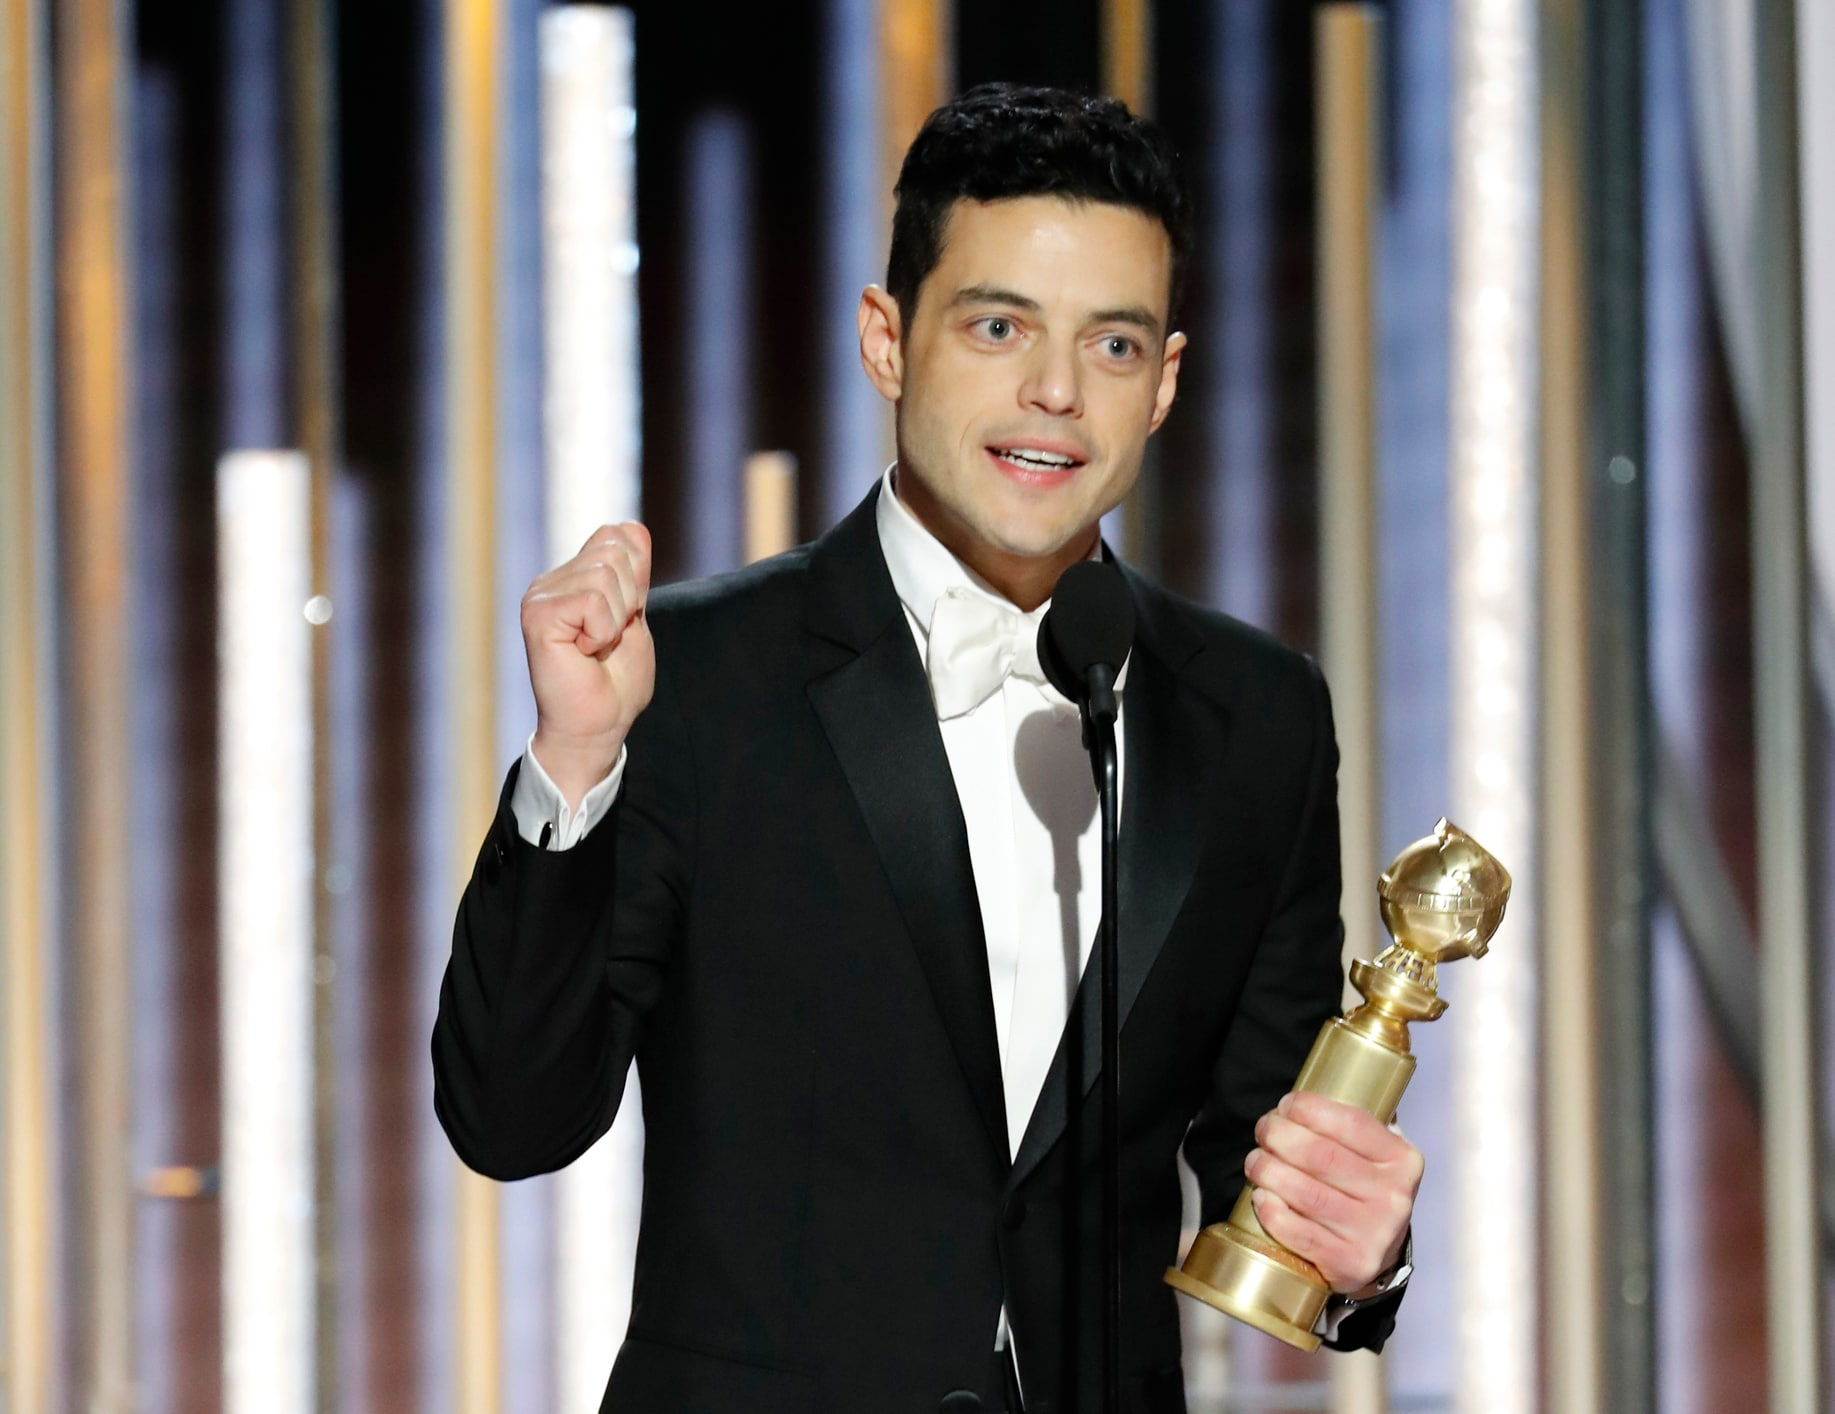 Rami Malek, winner of Best Actor - Motion Picture, Drama, accepts his award  at the 76th Golden Globe Awards in Beverly Hills, California, US, January 6, 2019. Paul Drinkwater/NBC Universal/Handout via REUTERS